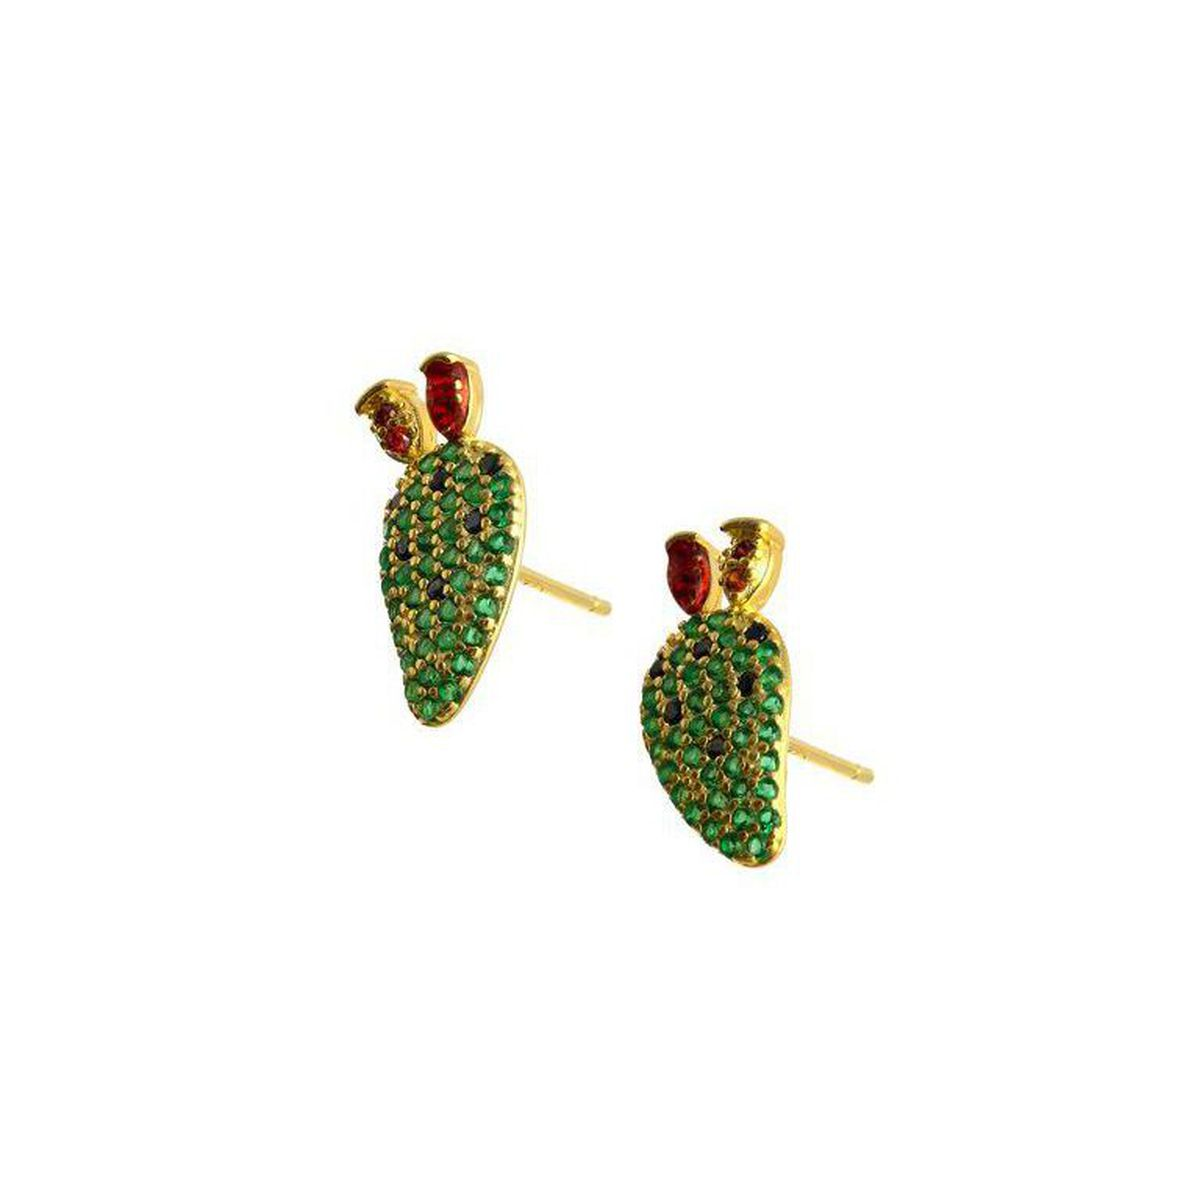 FIG SHOVEL GOLD EARRINGS Gold M'AMI SICILY JEWELS